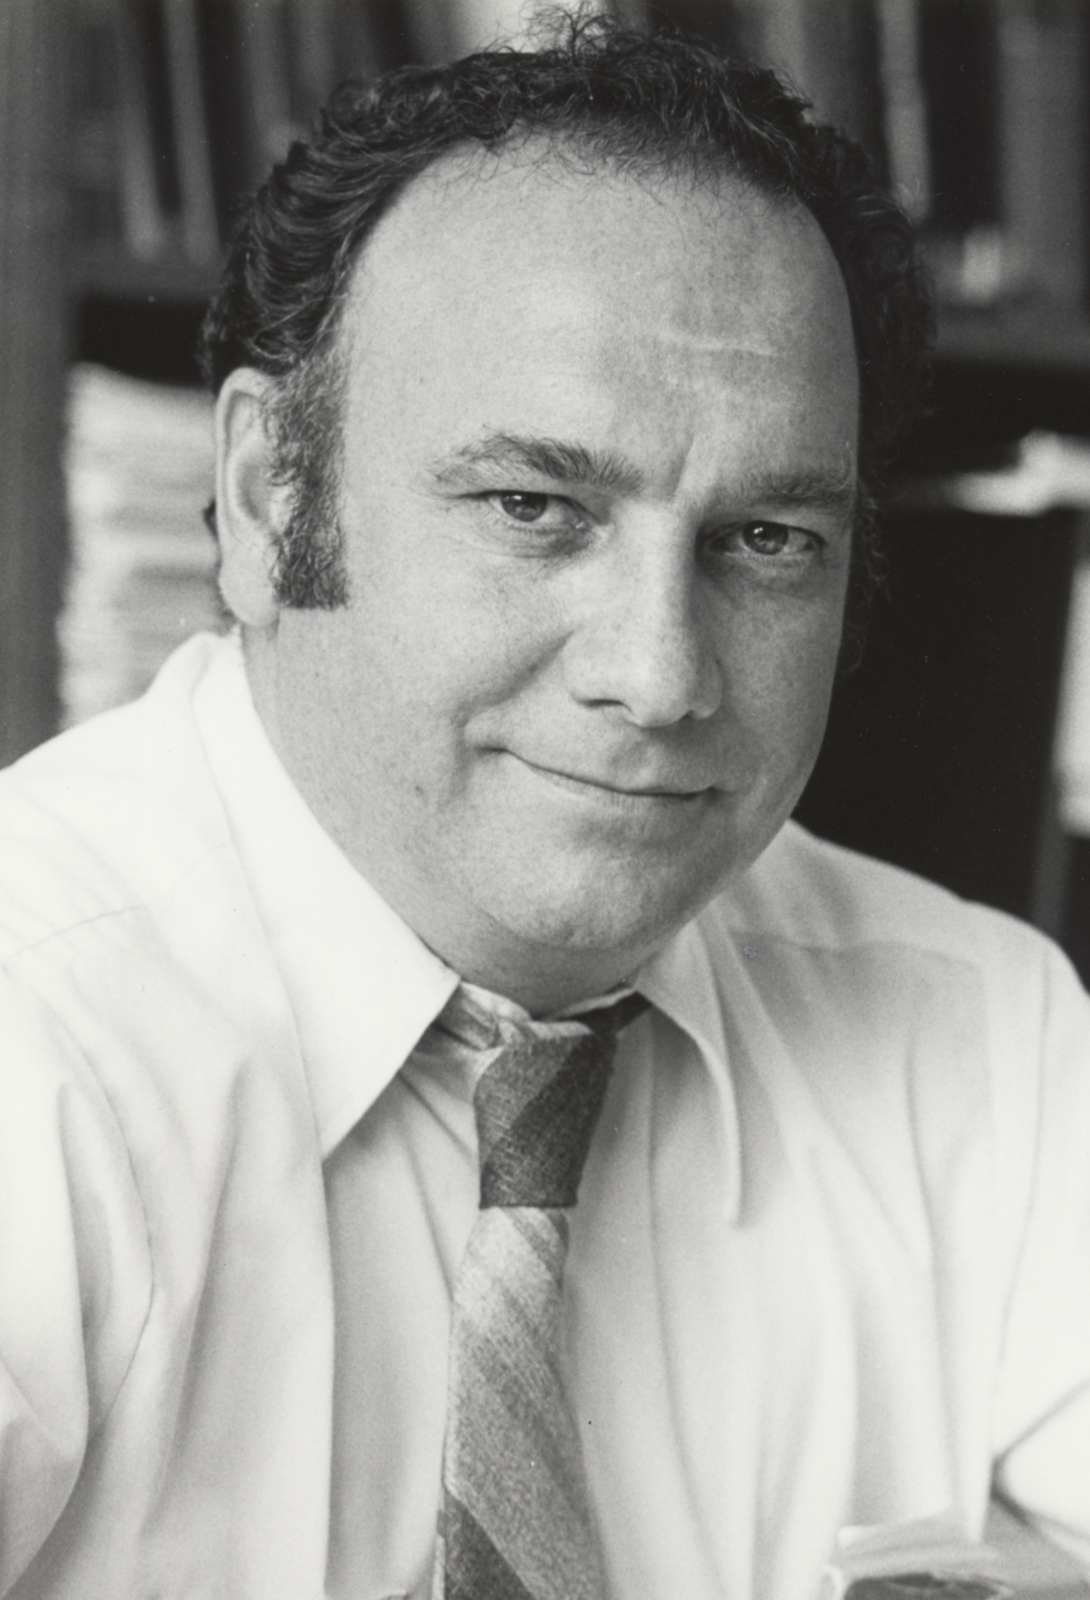 Machiel John Scholte joined Connaught in 1968 as a research assistant and after working closely with Dr. D.W. Stainer on synthetic media for diphtheria toxoid and pertussis vaccine, shifted to insulin research and production in 1971.